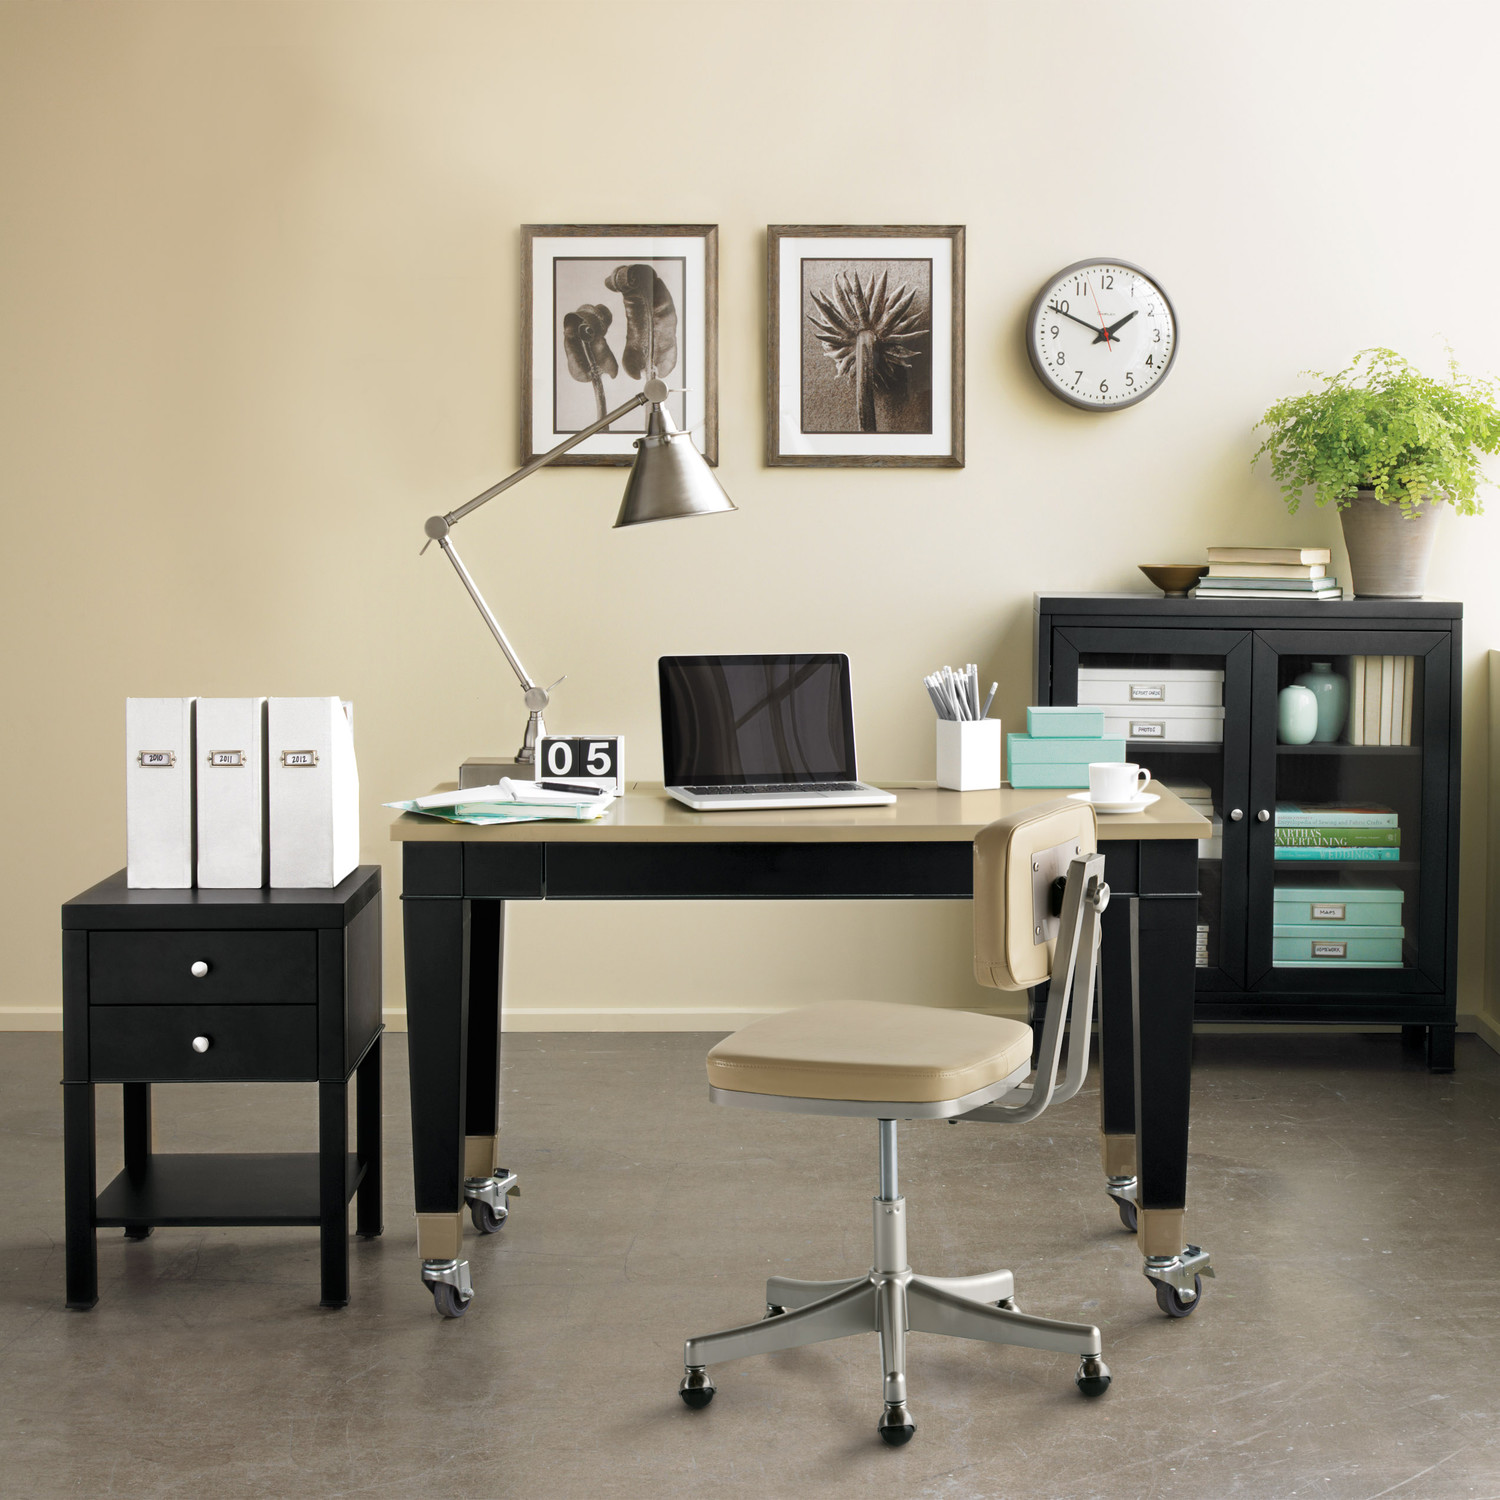 storage white americana desks the depot styles n office for with home furniture floating b desk